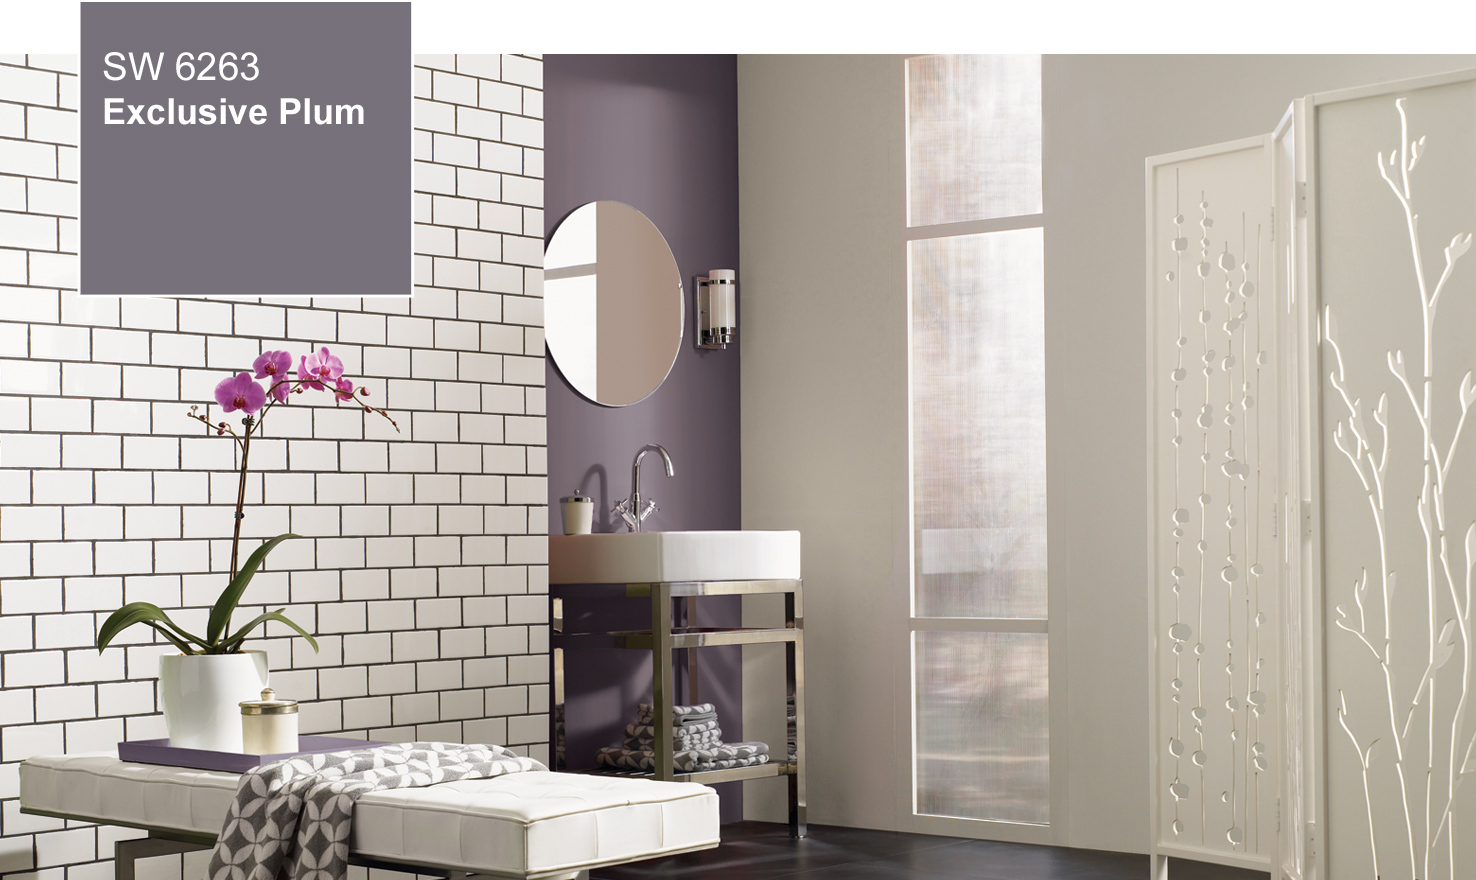 Sherwin williams 2014 color of the year exclusive plum Paint color of the year